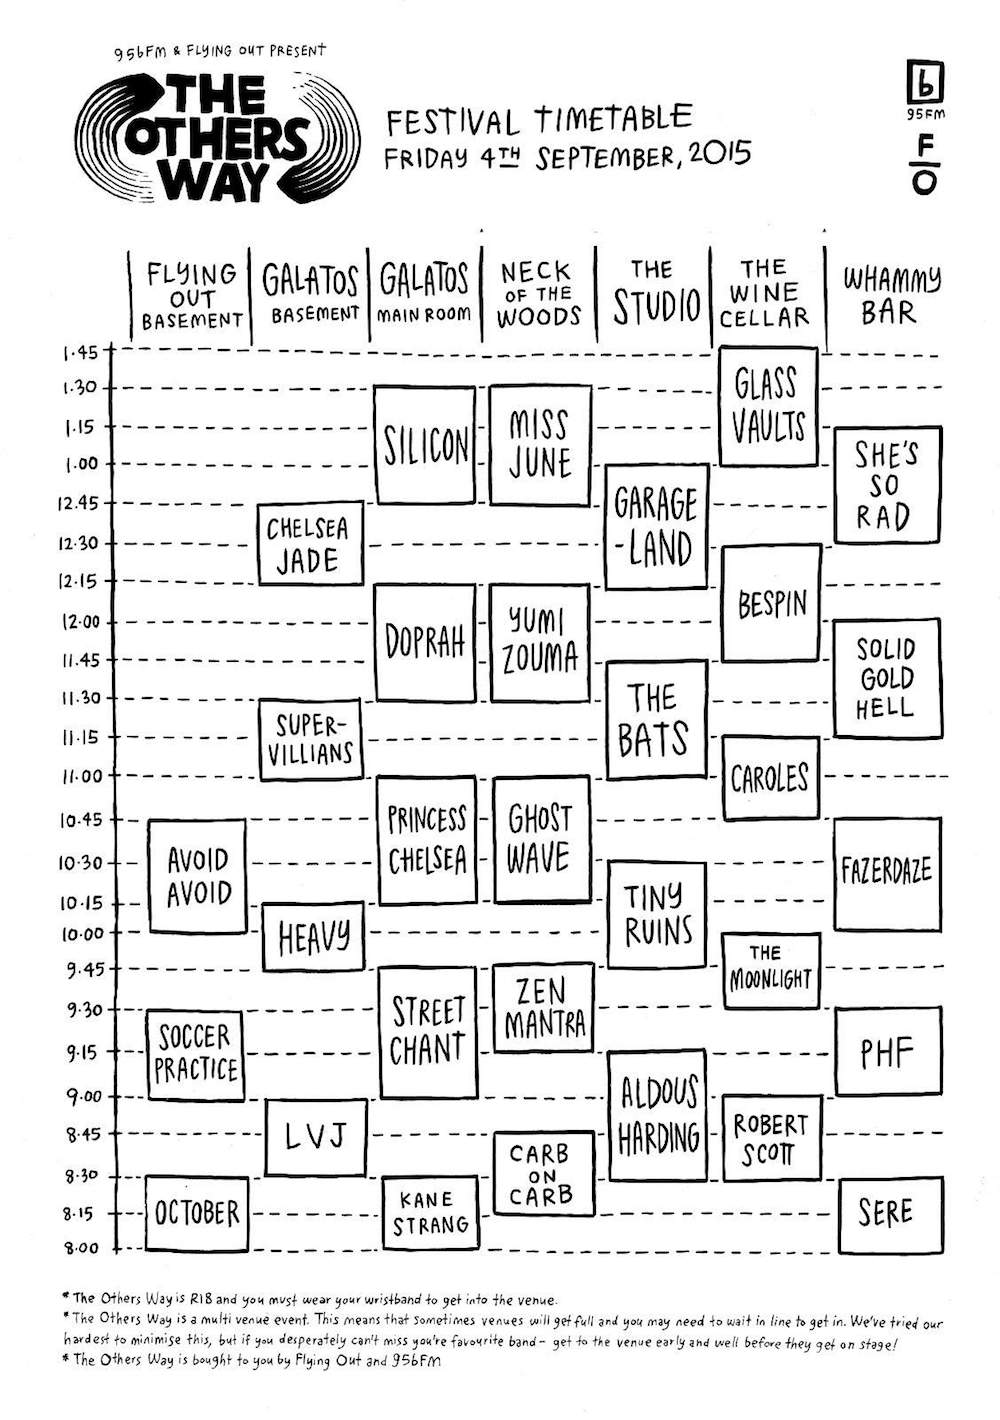 The Others Way Music Festival Timetable 2015.jpg